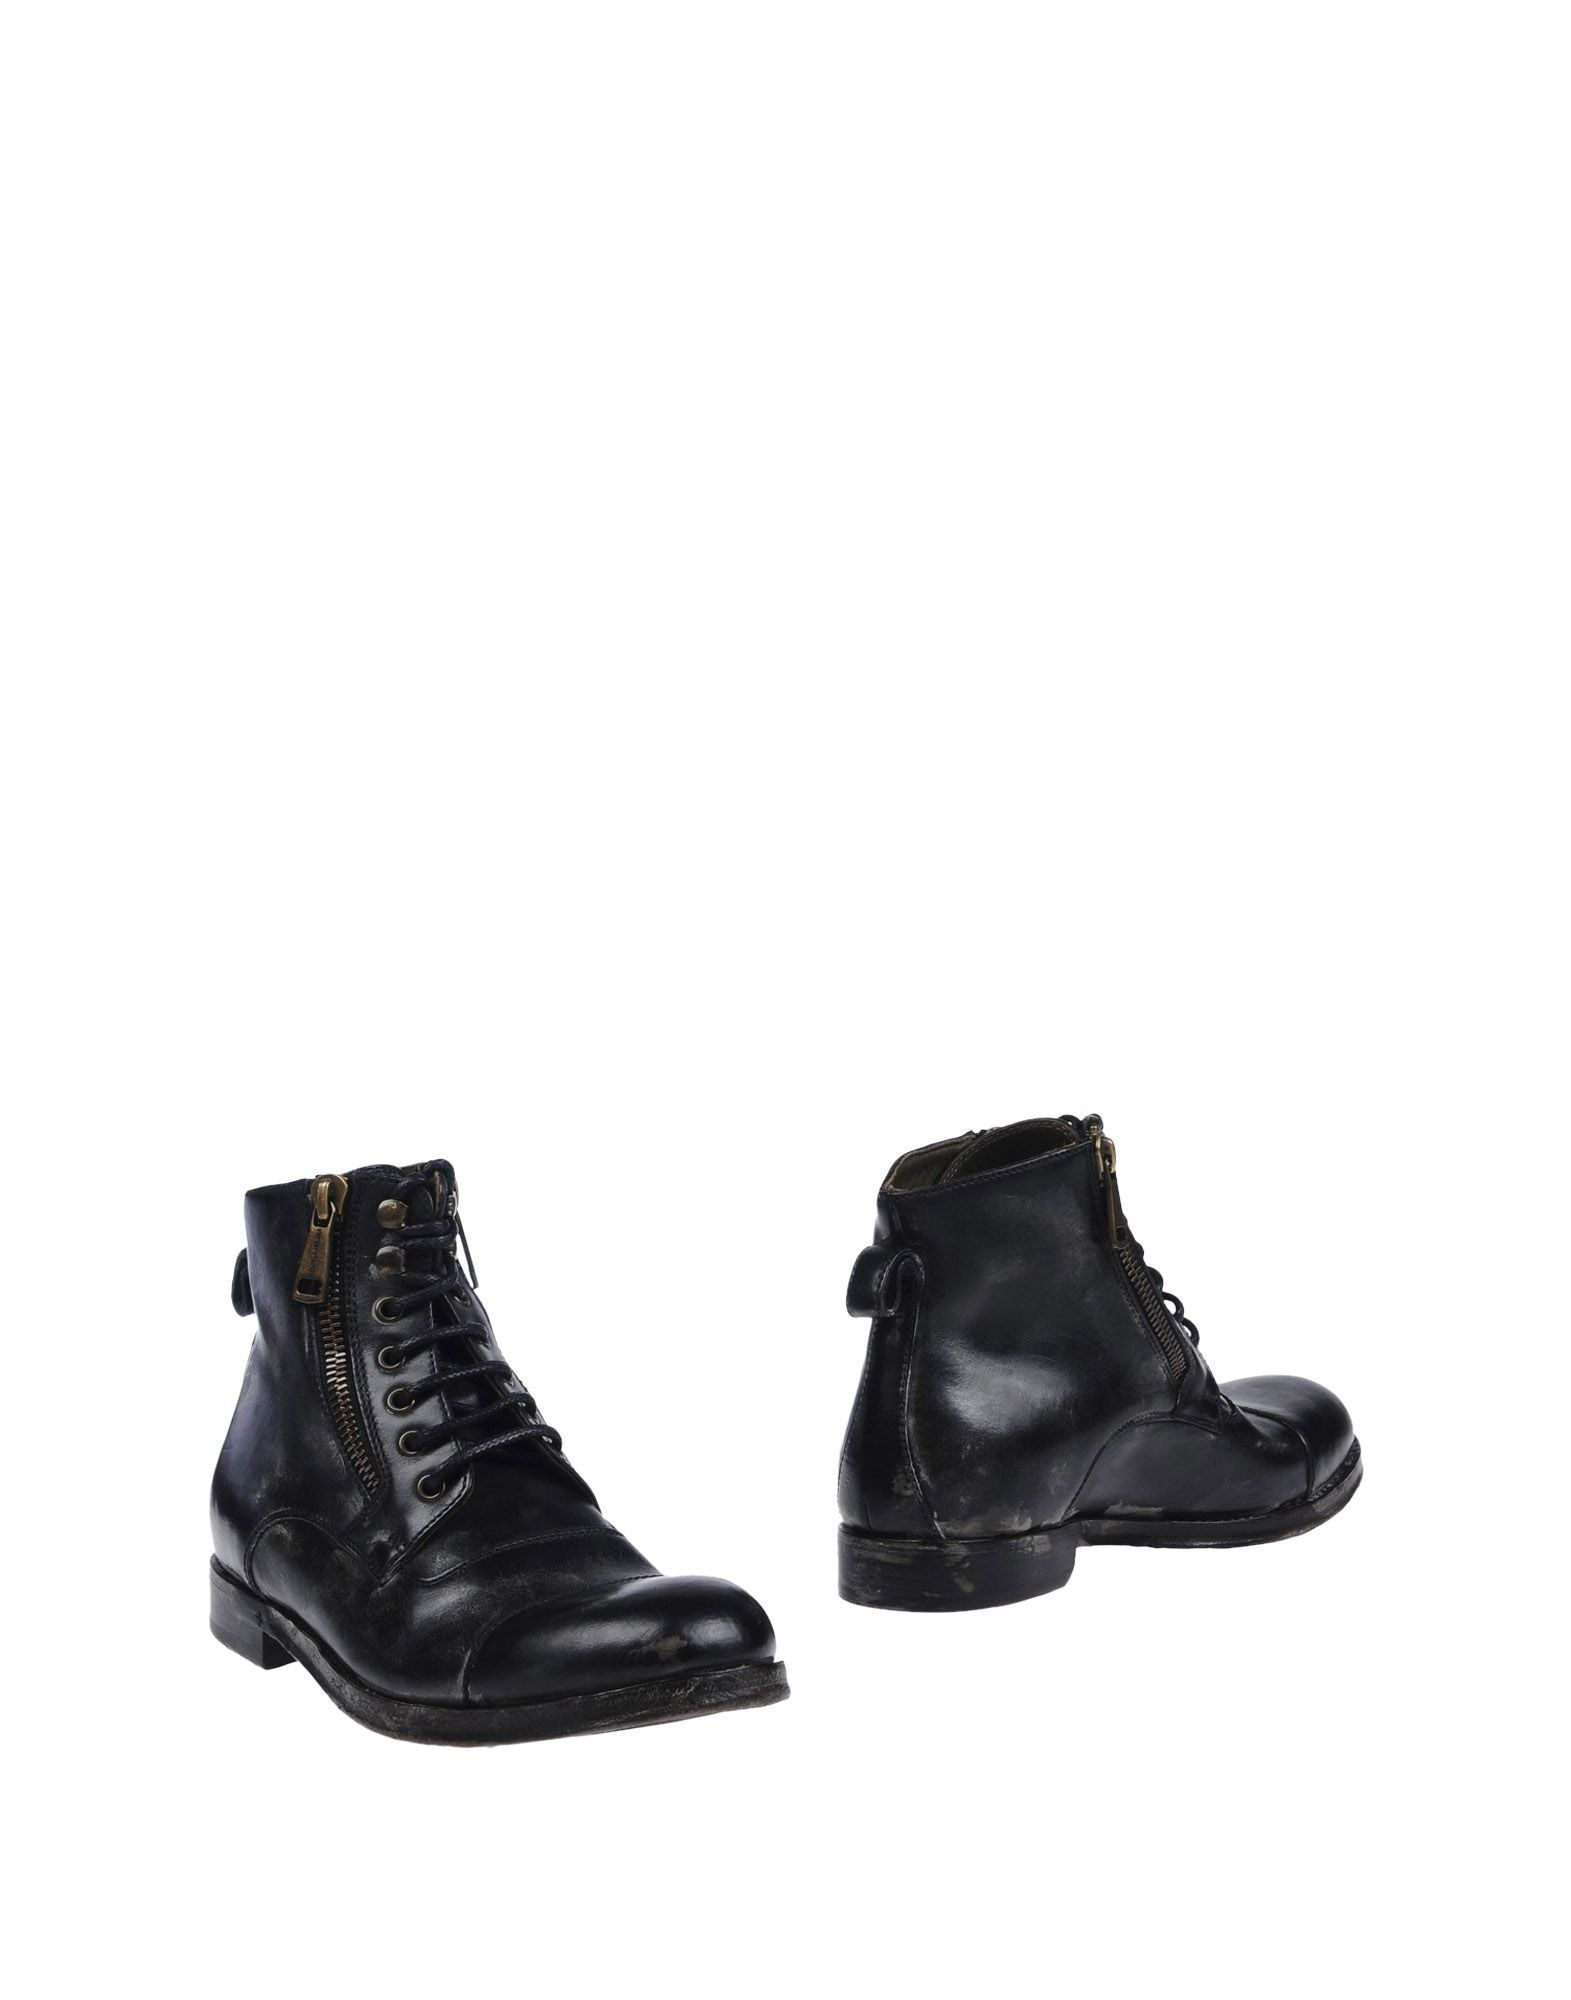 DOLCE   GABBANA Ankle Boots.  dolcegabbana  shoes  all  cb4b466b5575